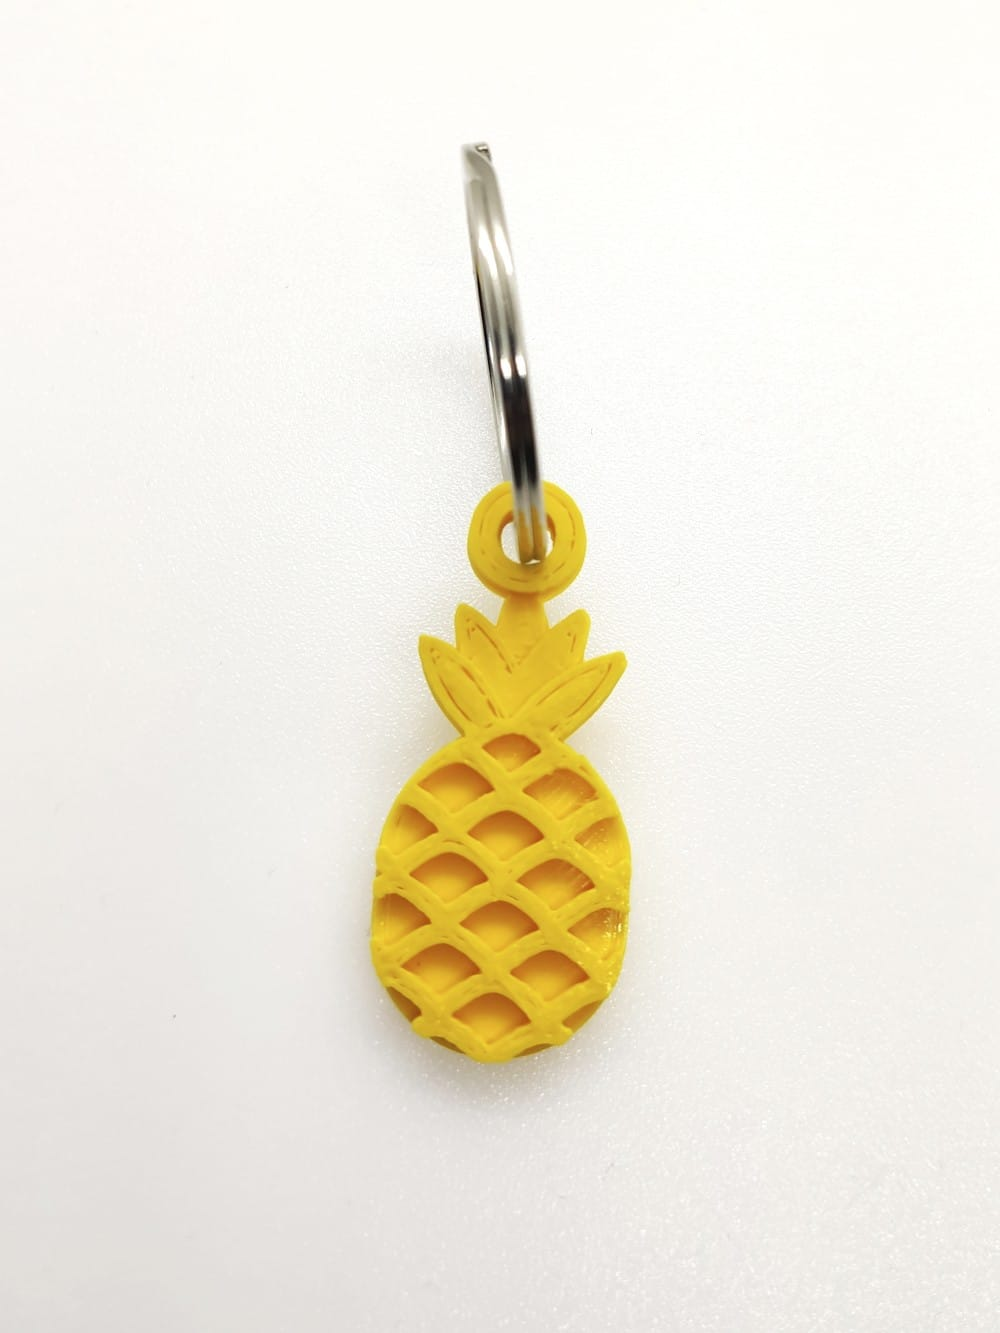 Biodegradable 3D printed keychain-Pi a